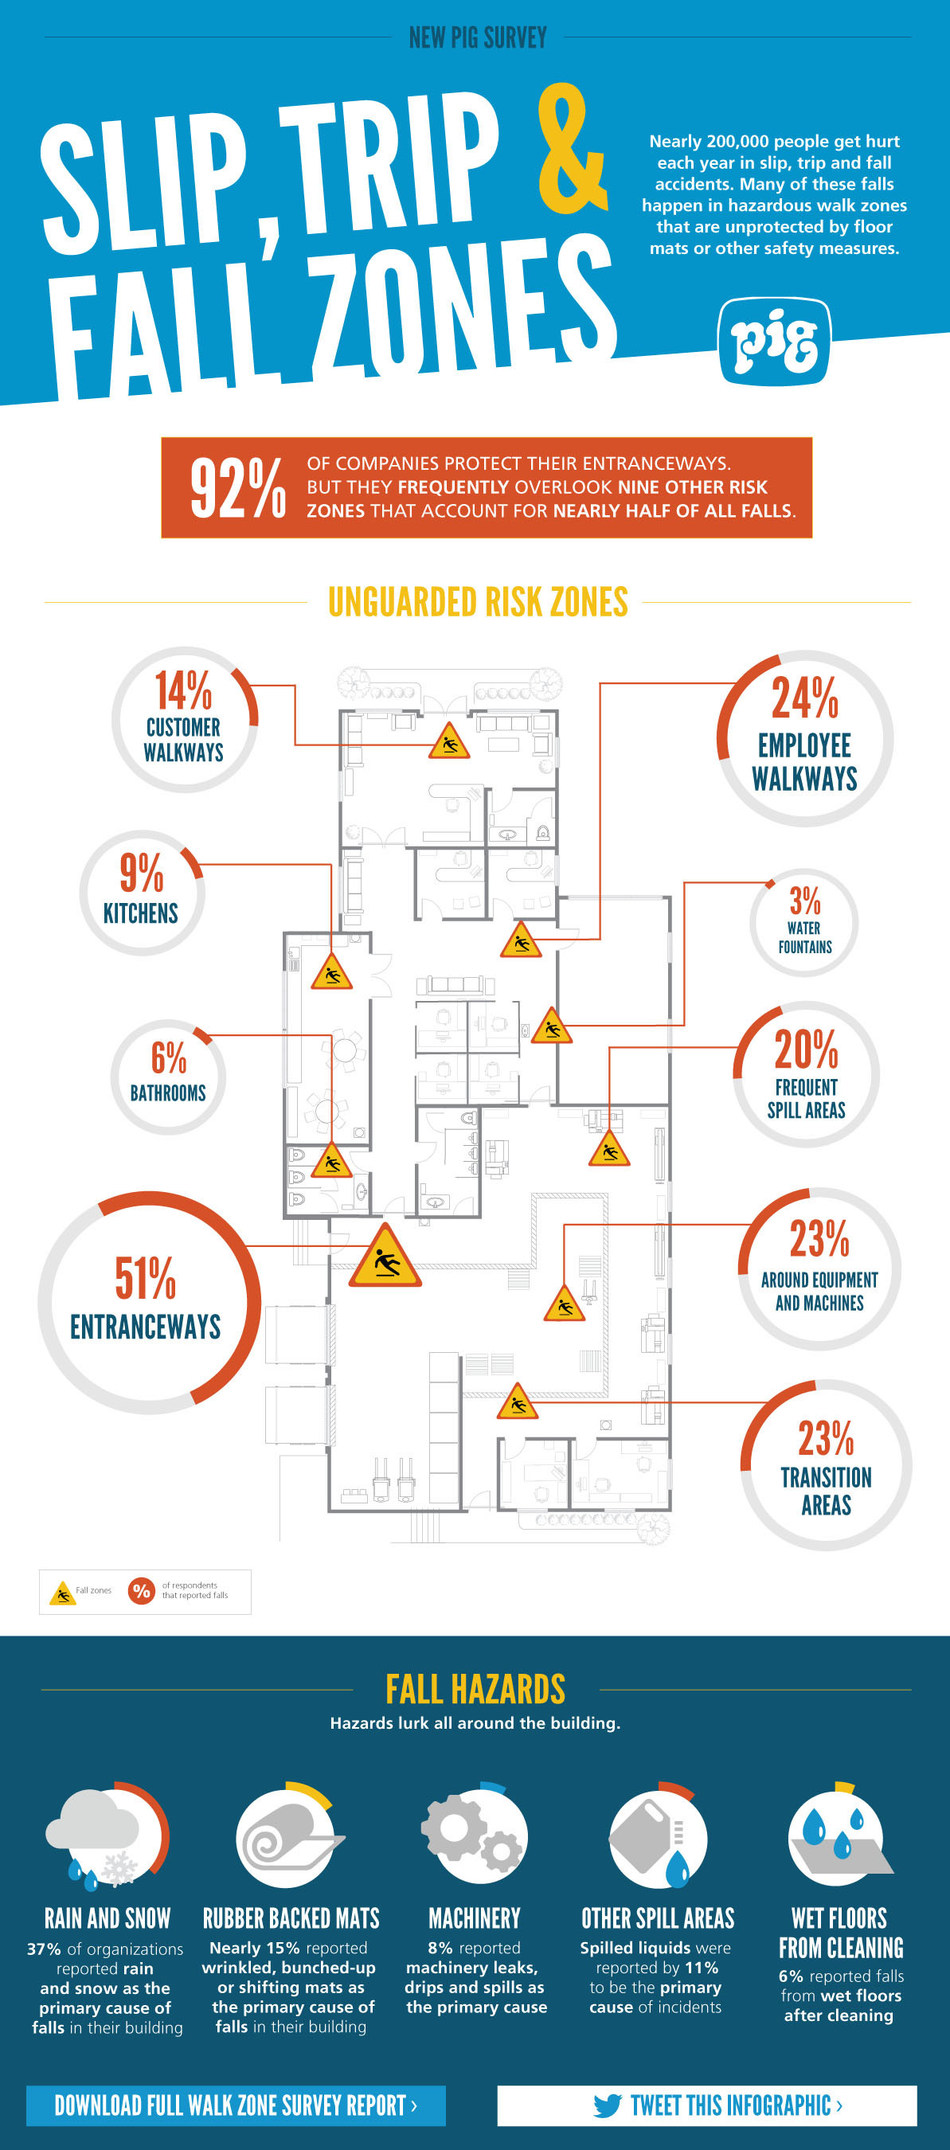 Slip, trip and fall zones info graphic. Nearly 200,000 people get hurt each year in slip, trip and fall accidents. Many of these falls happen in hazardous walk zones that are unprotected by floor mats or other safety measures.